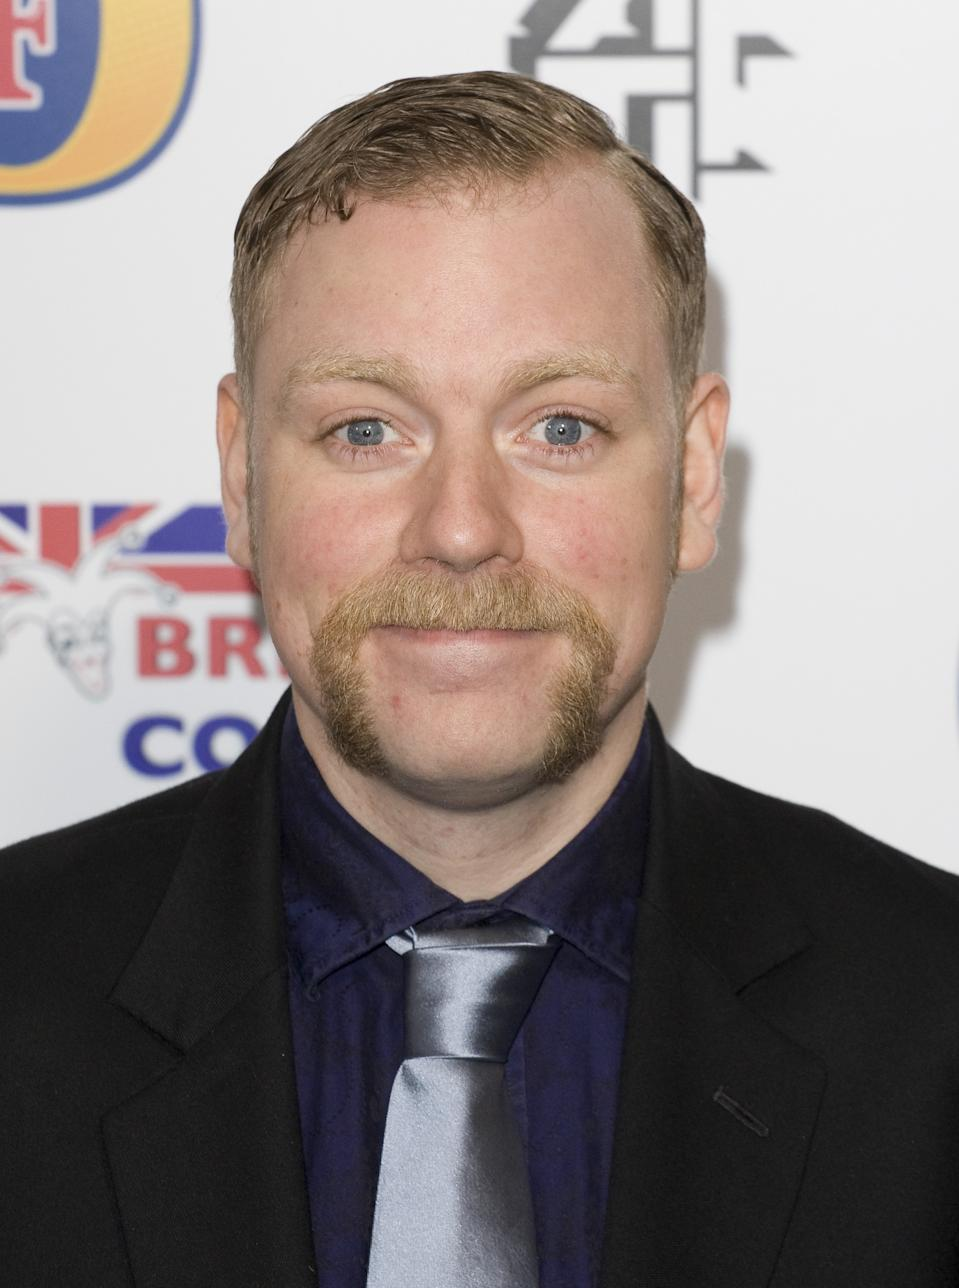 Rufus Hound Arriving For The British Comedy Awards At Indigo2, At The O2 Arena, London. (Photo by John Phillips/UK Press via Getty Images)